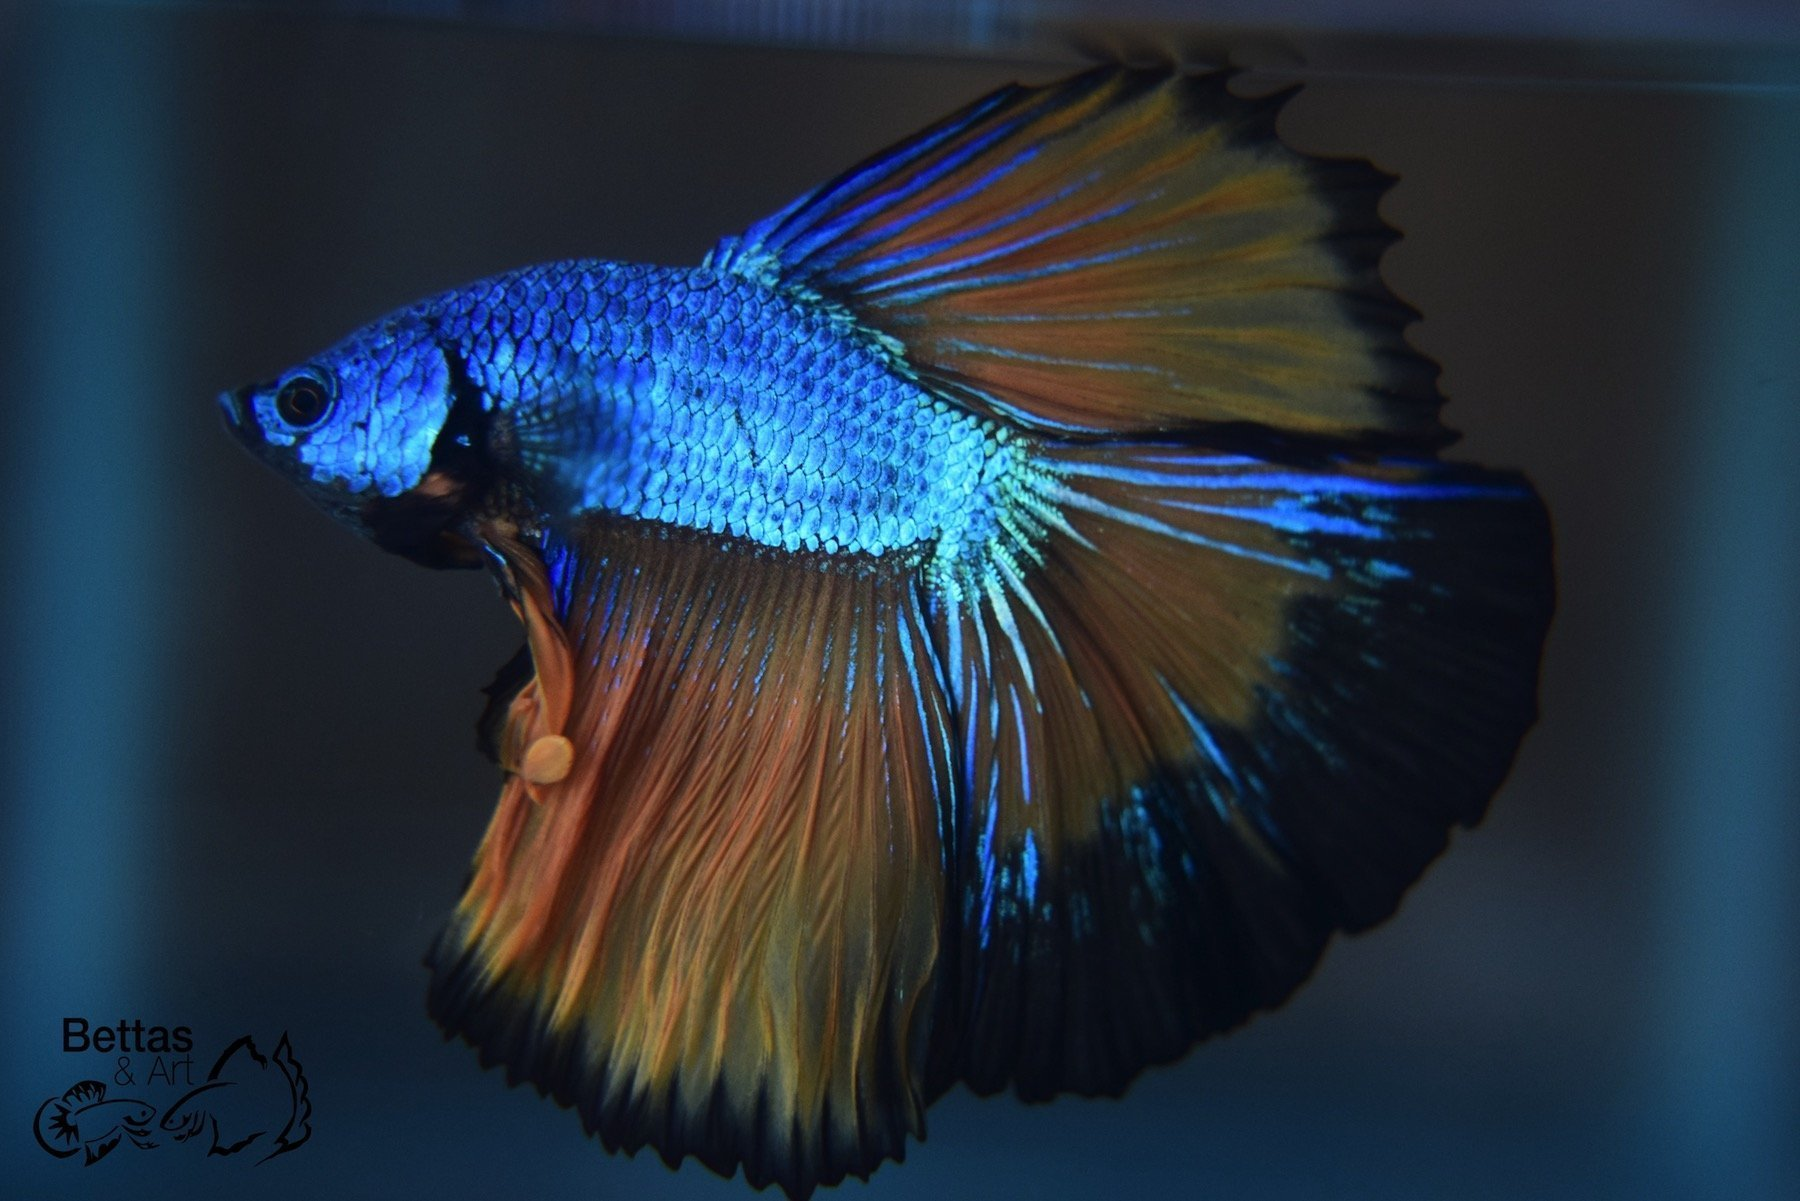 Imported Bettas & Accessories for Sale - Located in NYC